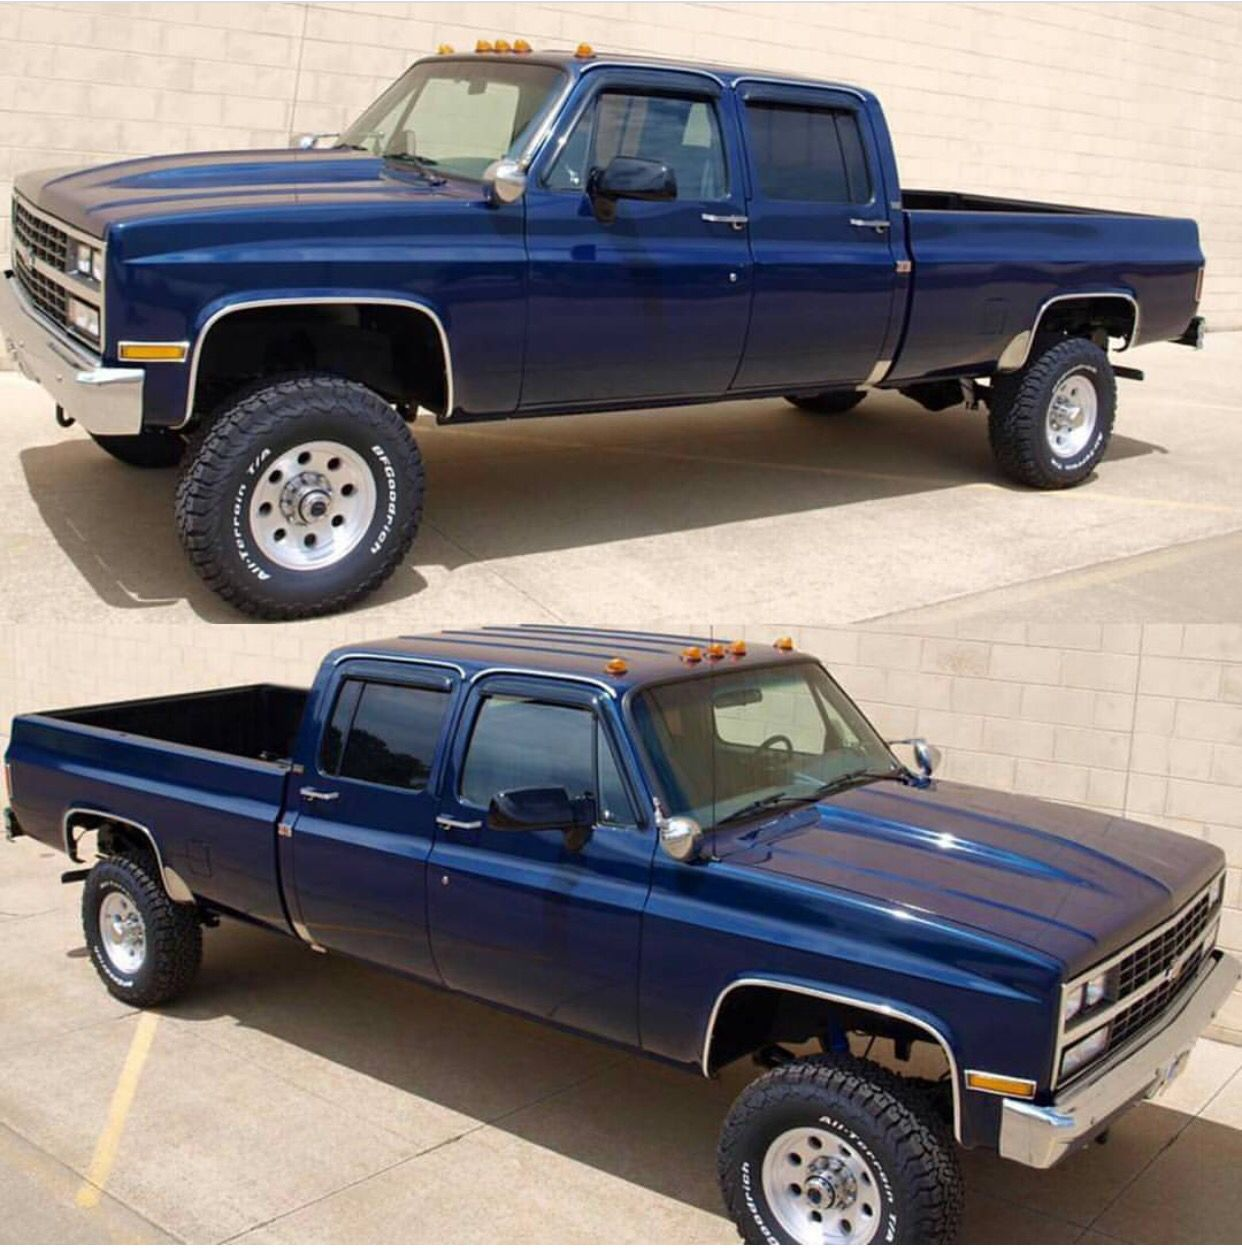 89 39 chevy scottsdale 2500 crew cab long bed pickup trucks pinterest cars squares and 4x4. Black Bedroom Furniture Sets. Home Design Ideas